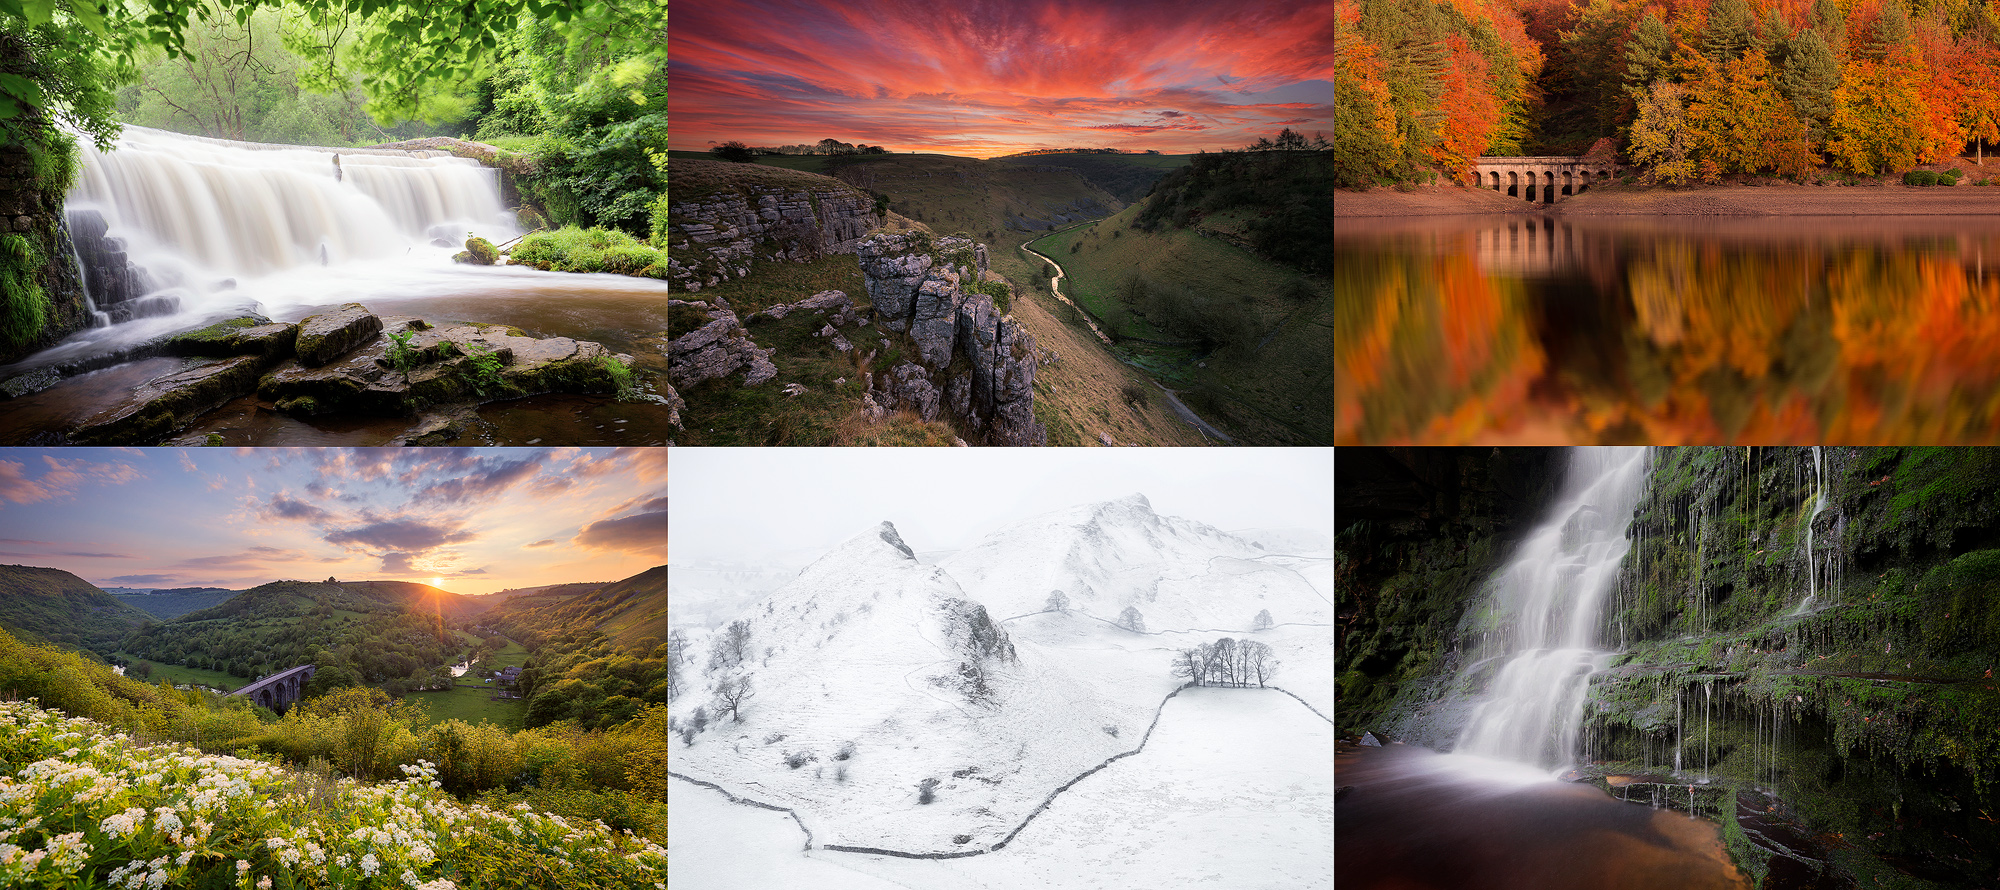 Peak District Photography Workshops and Tuition - Photography courses and lessons in the Peak District and surrounding area.